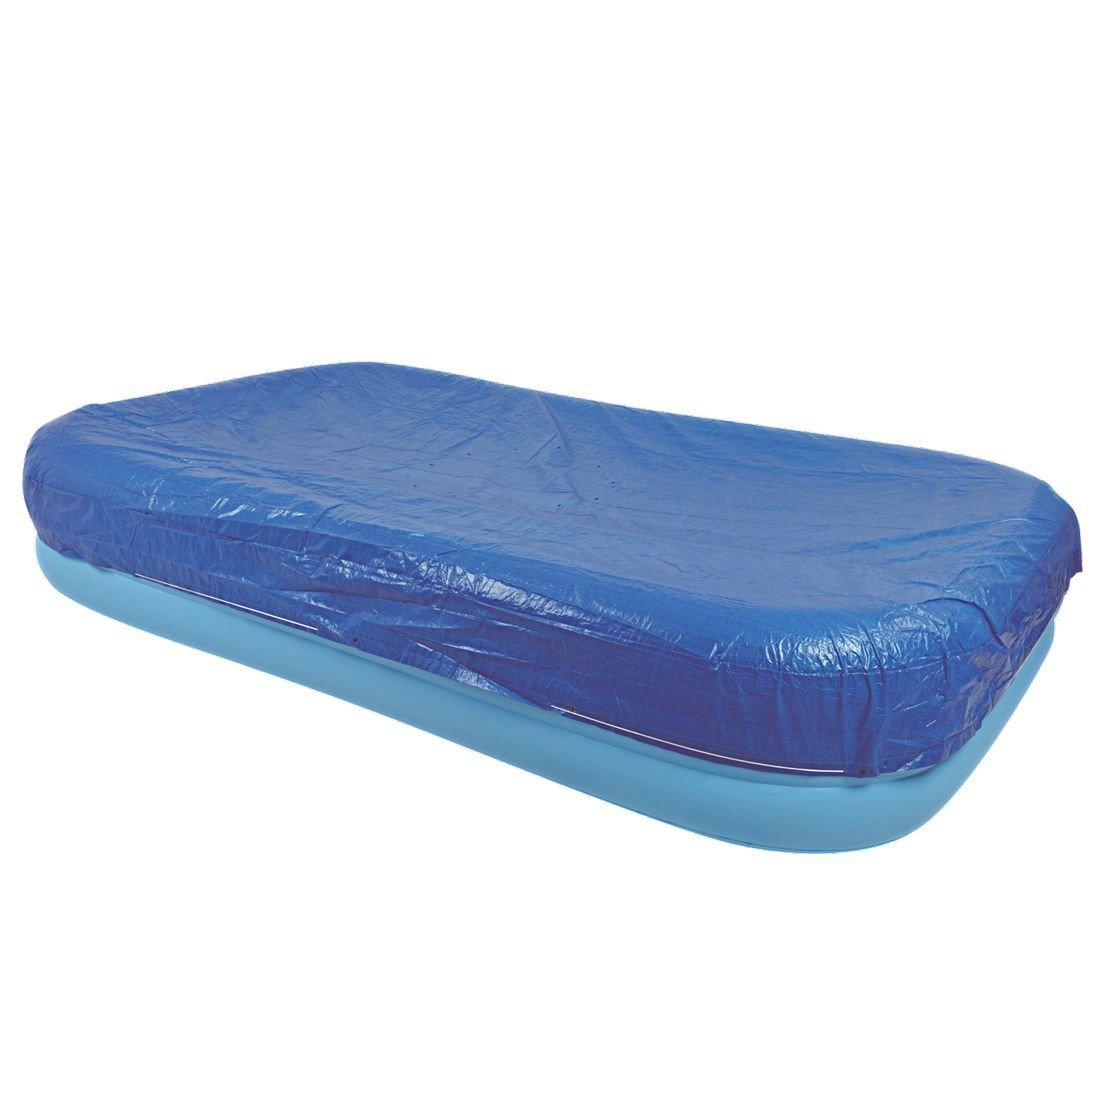 Fineway. Durable Deluxe Rectangular Family Swimming Paddling Pool Cover- Easy To Use To Prevent Dirt In The Water (103